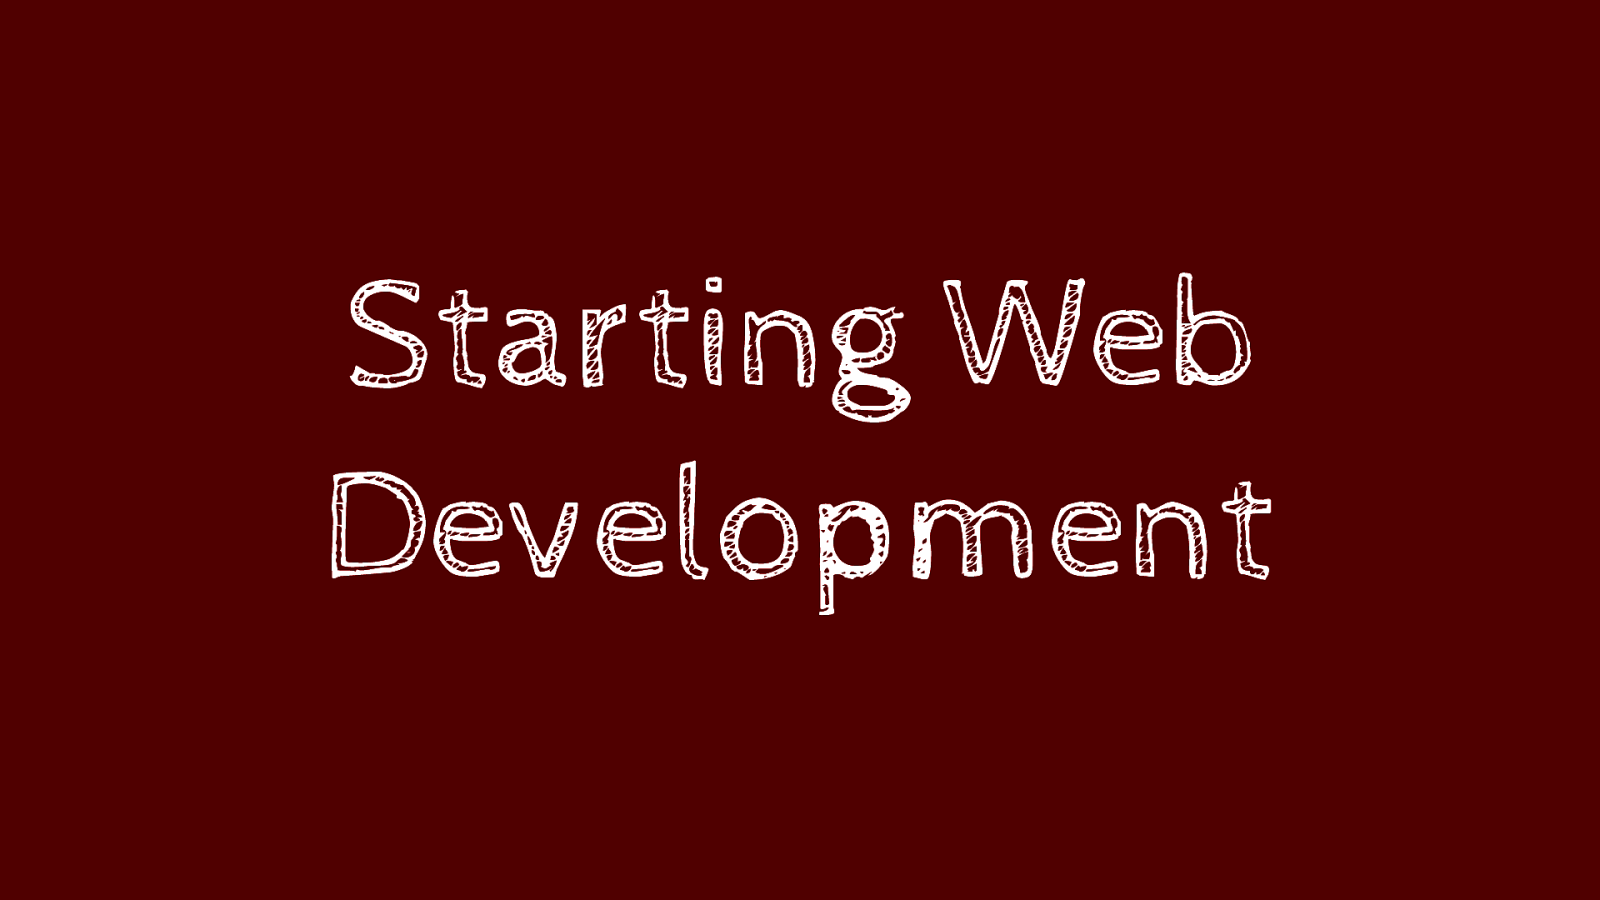 Starting web development